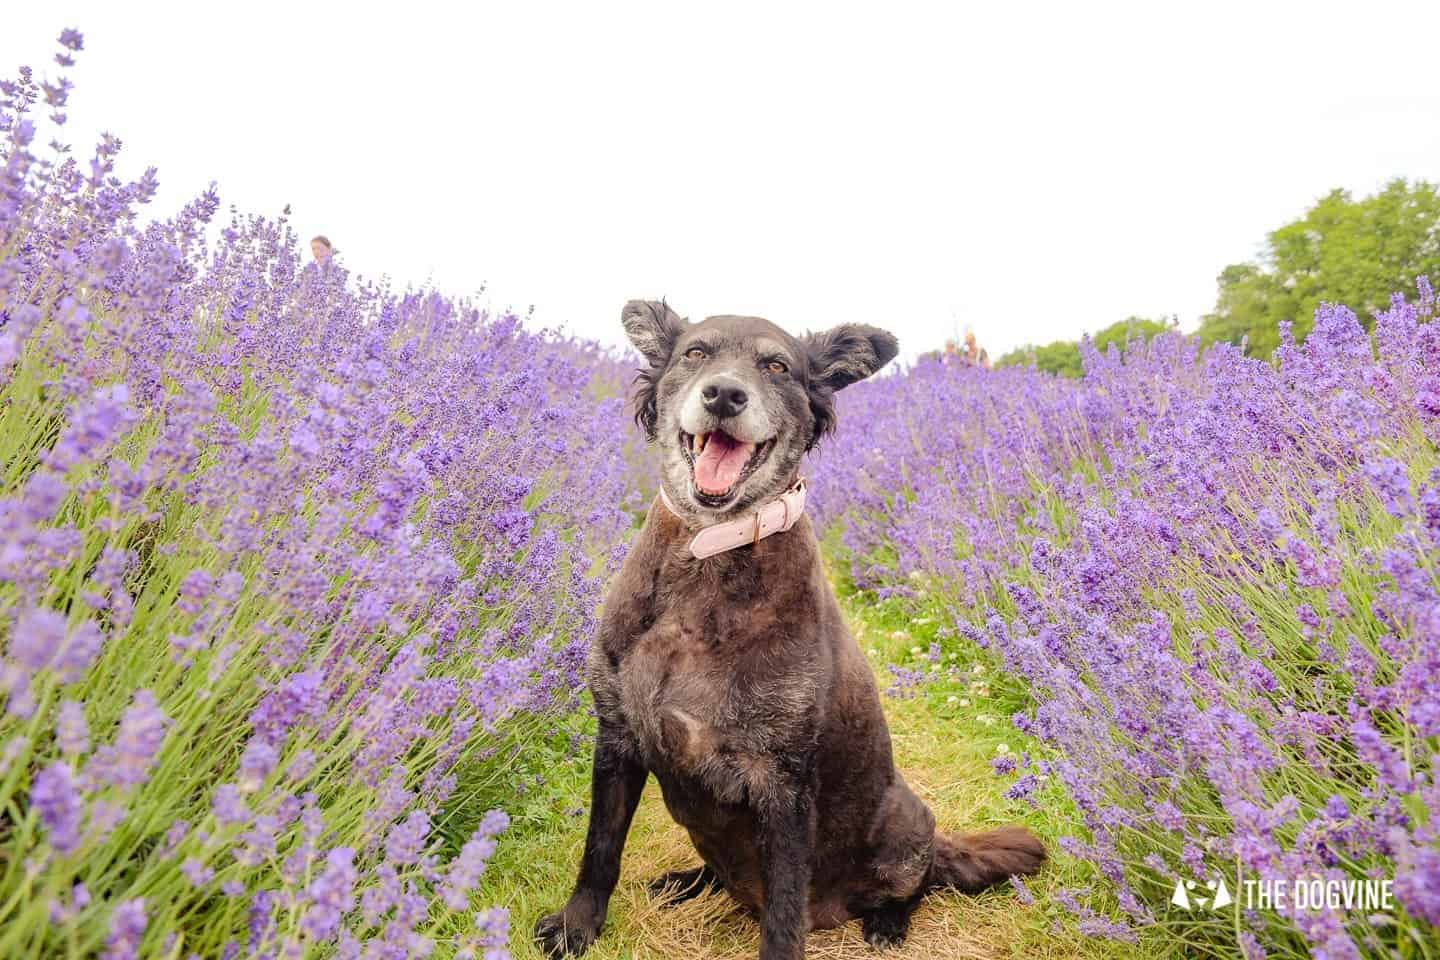 Dog-friendly Mayfield Lavender Farm - Belinha in the Lavender